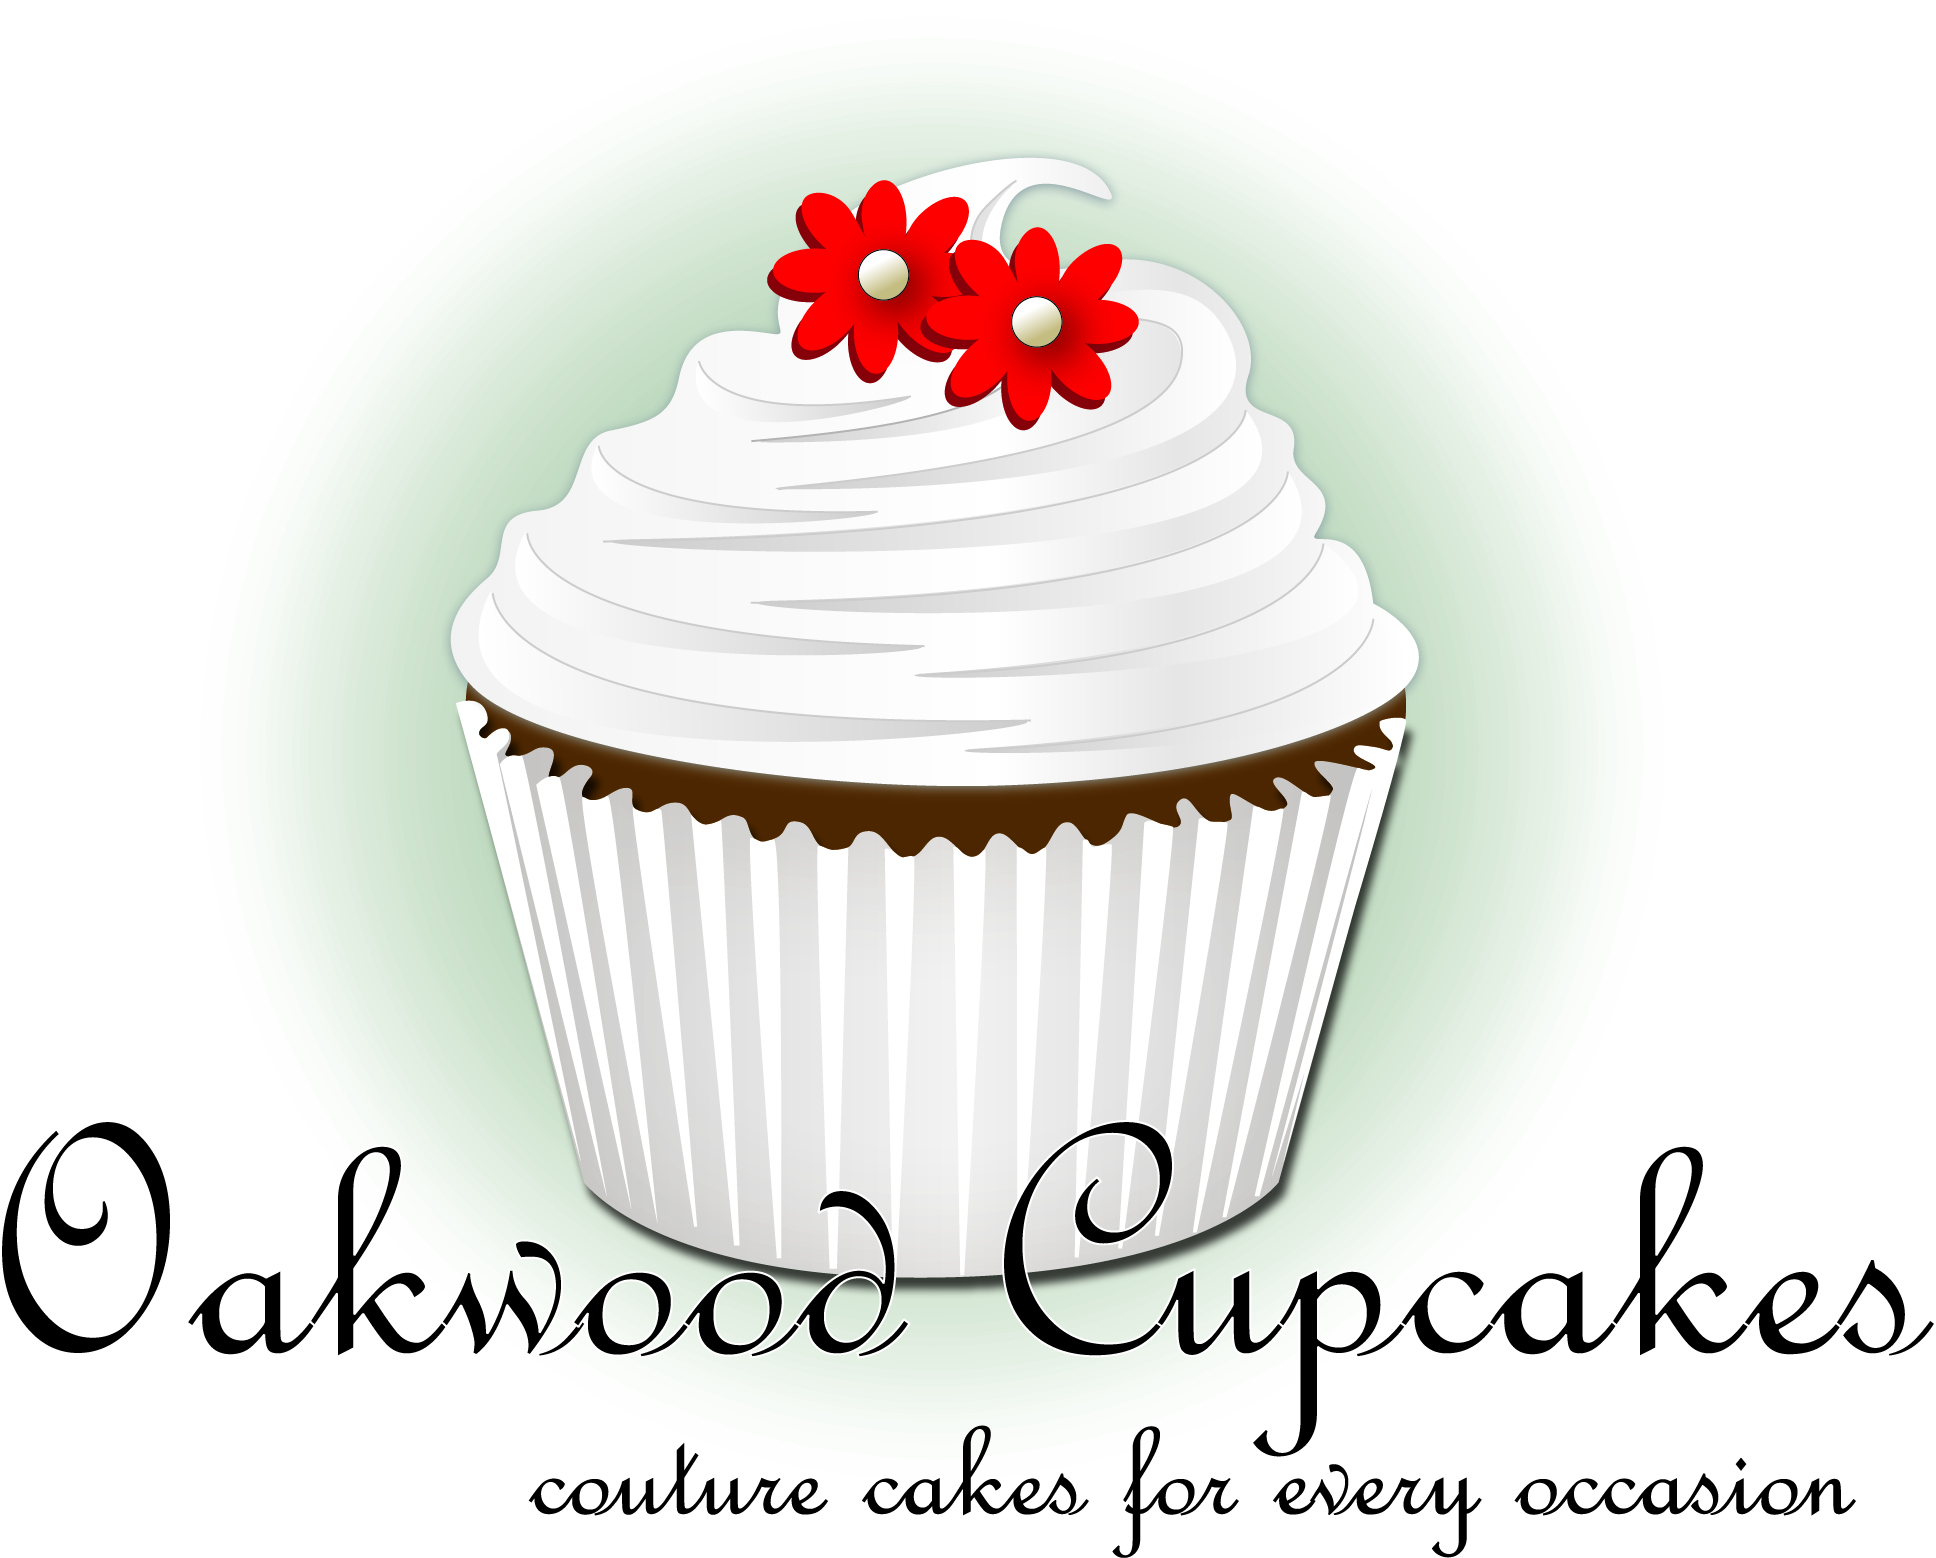 Logo design Oakwood Cupcakes